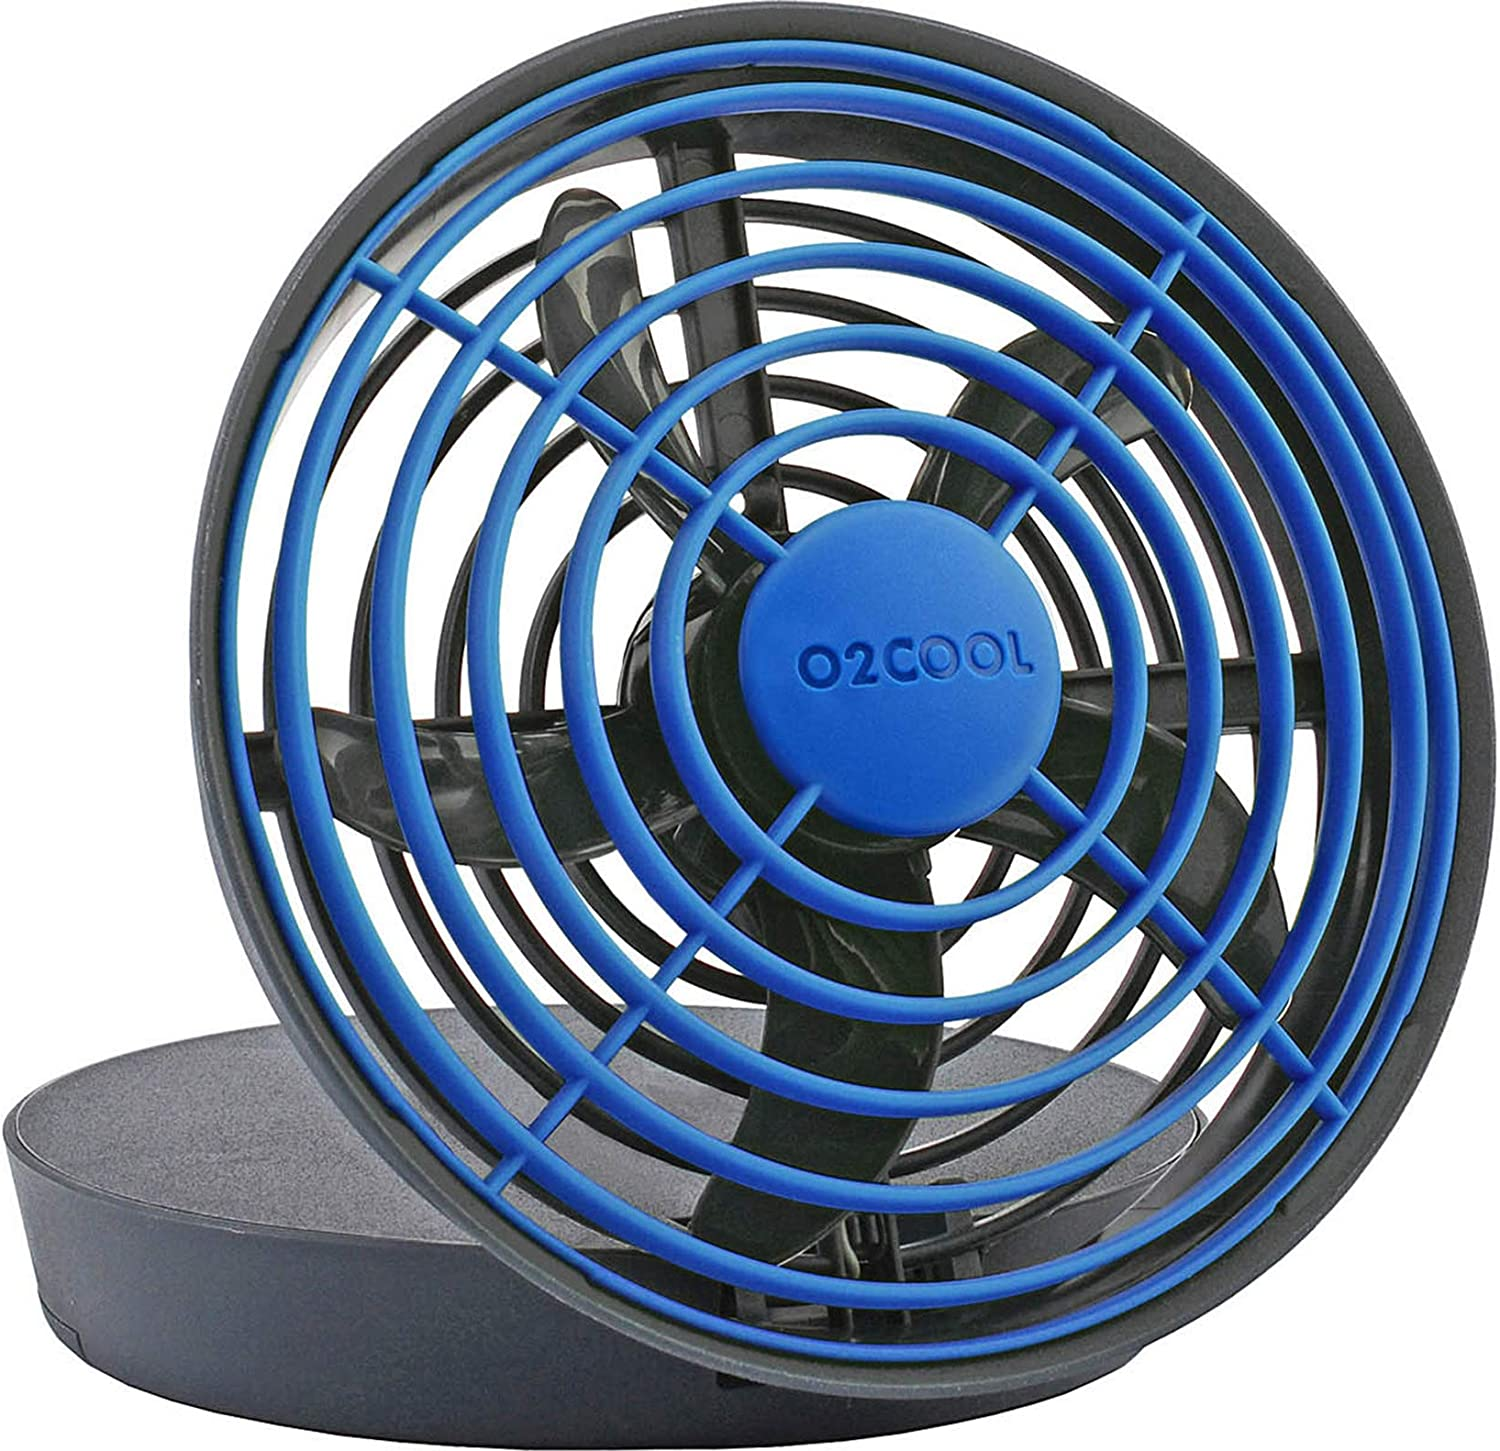 O2 COOL 5 Inch USB Portable Desktop Fan - 2 Speed Control, Compact And Lightweight Design